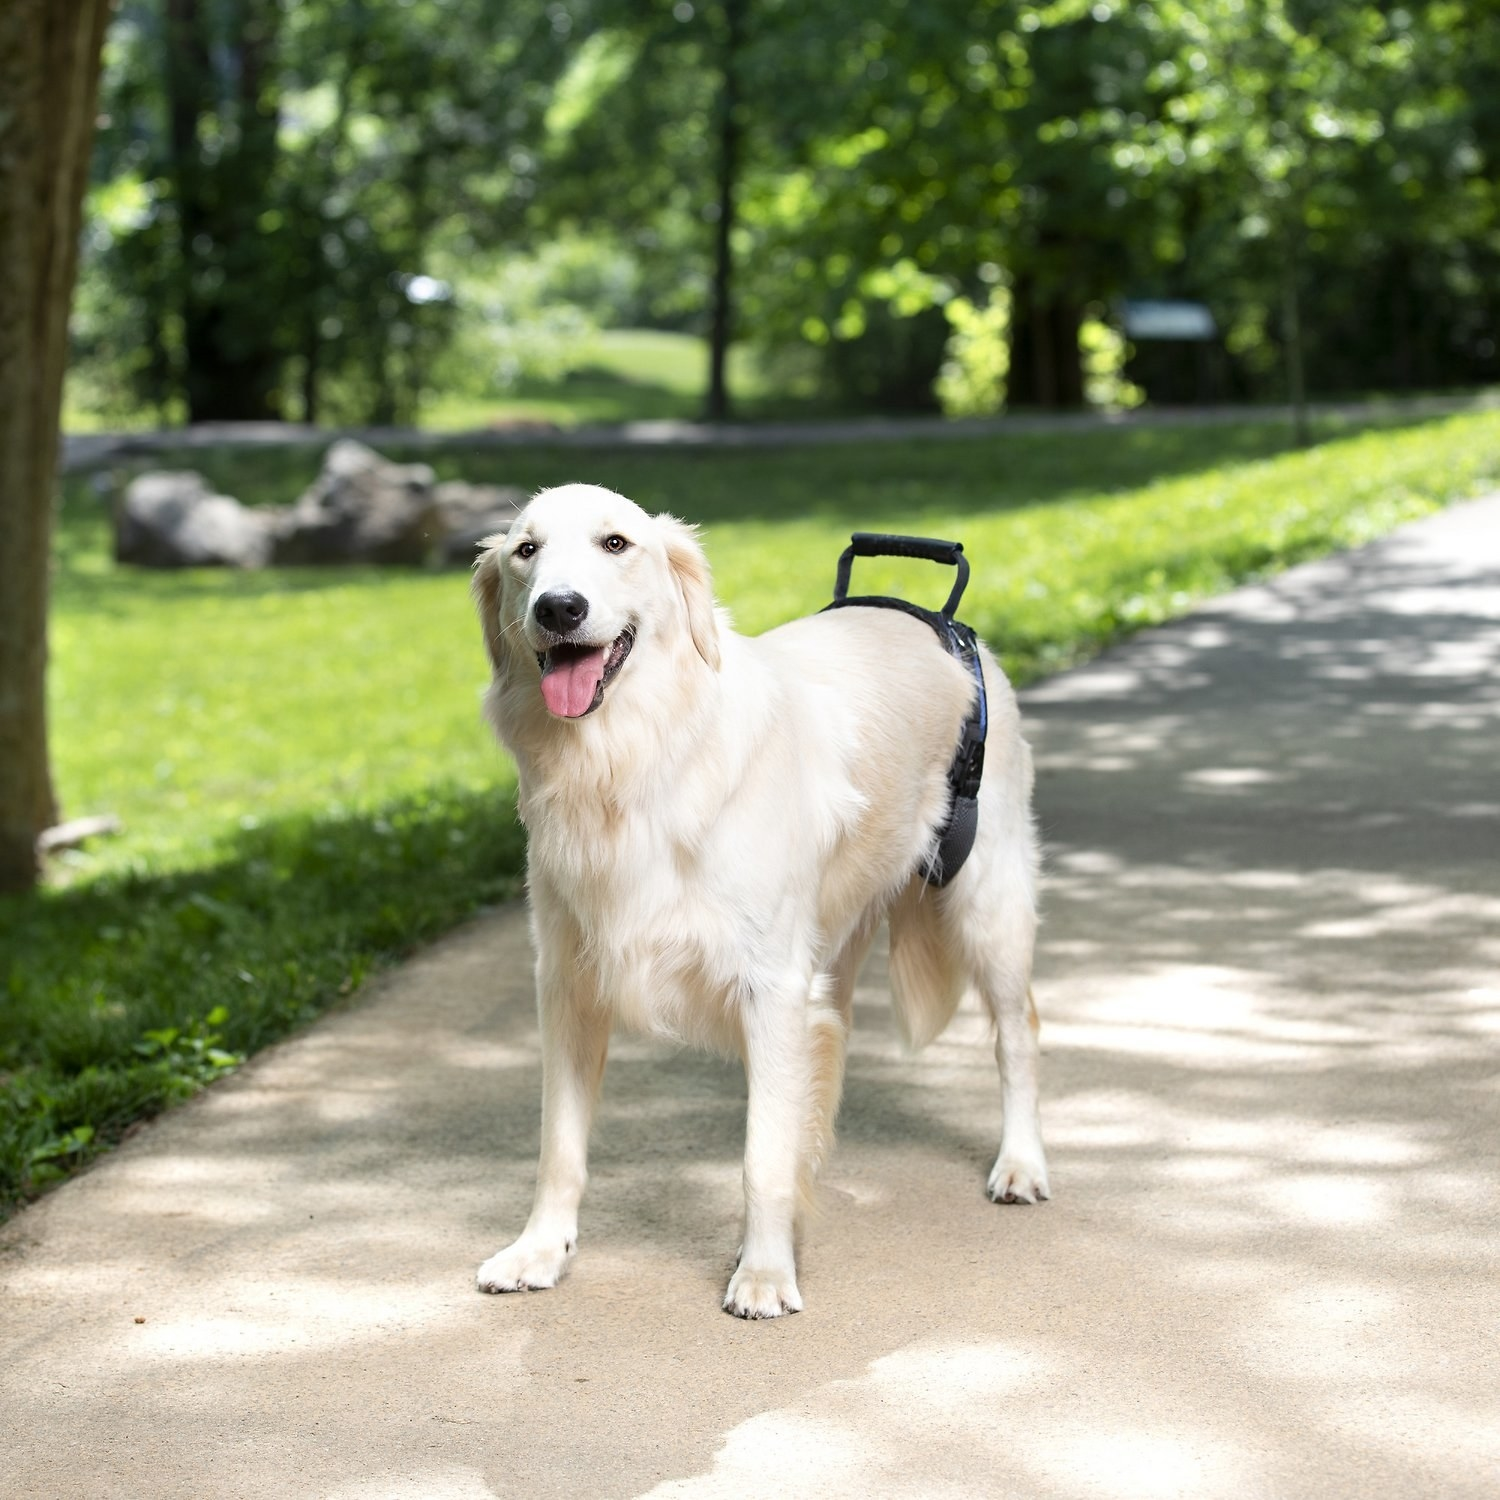 A dog with a support harness around its hips.